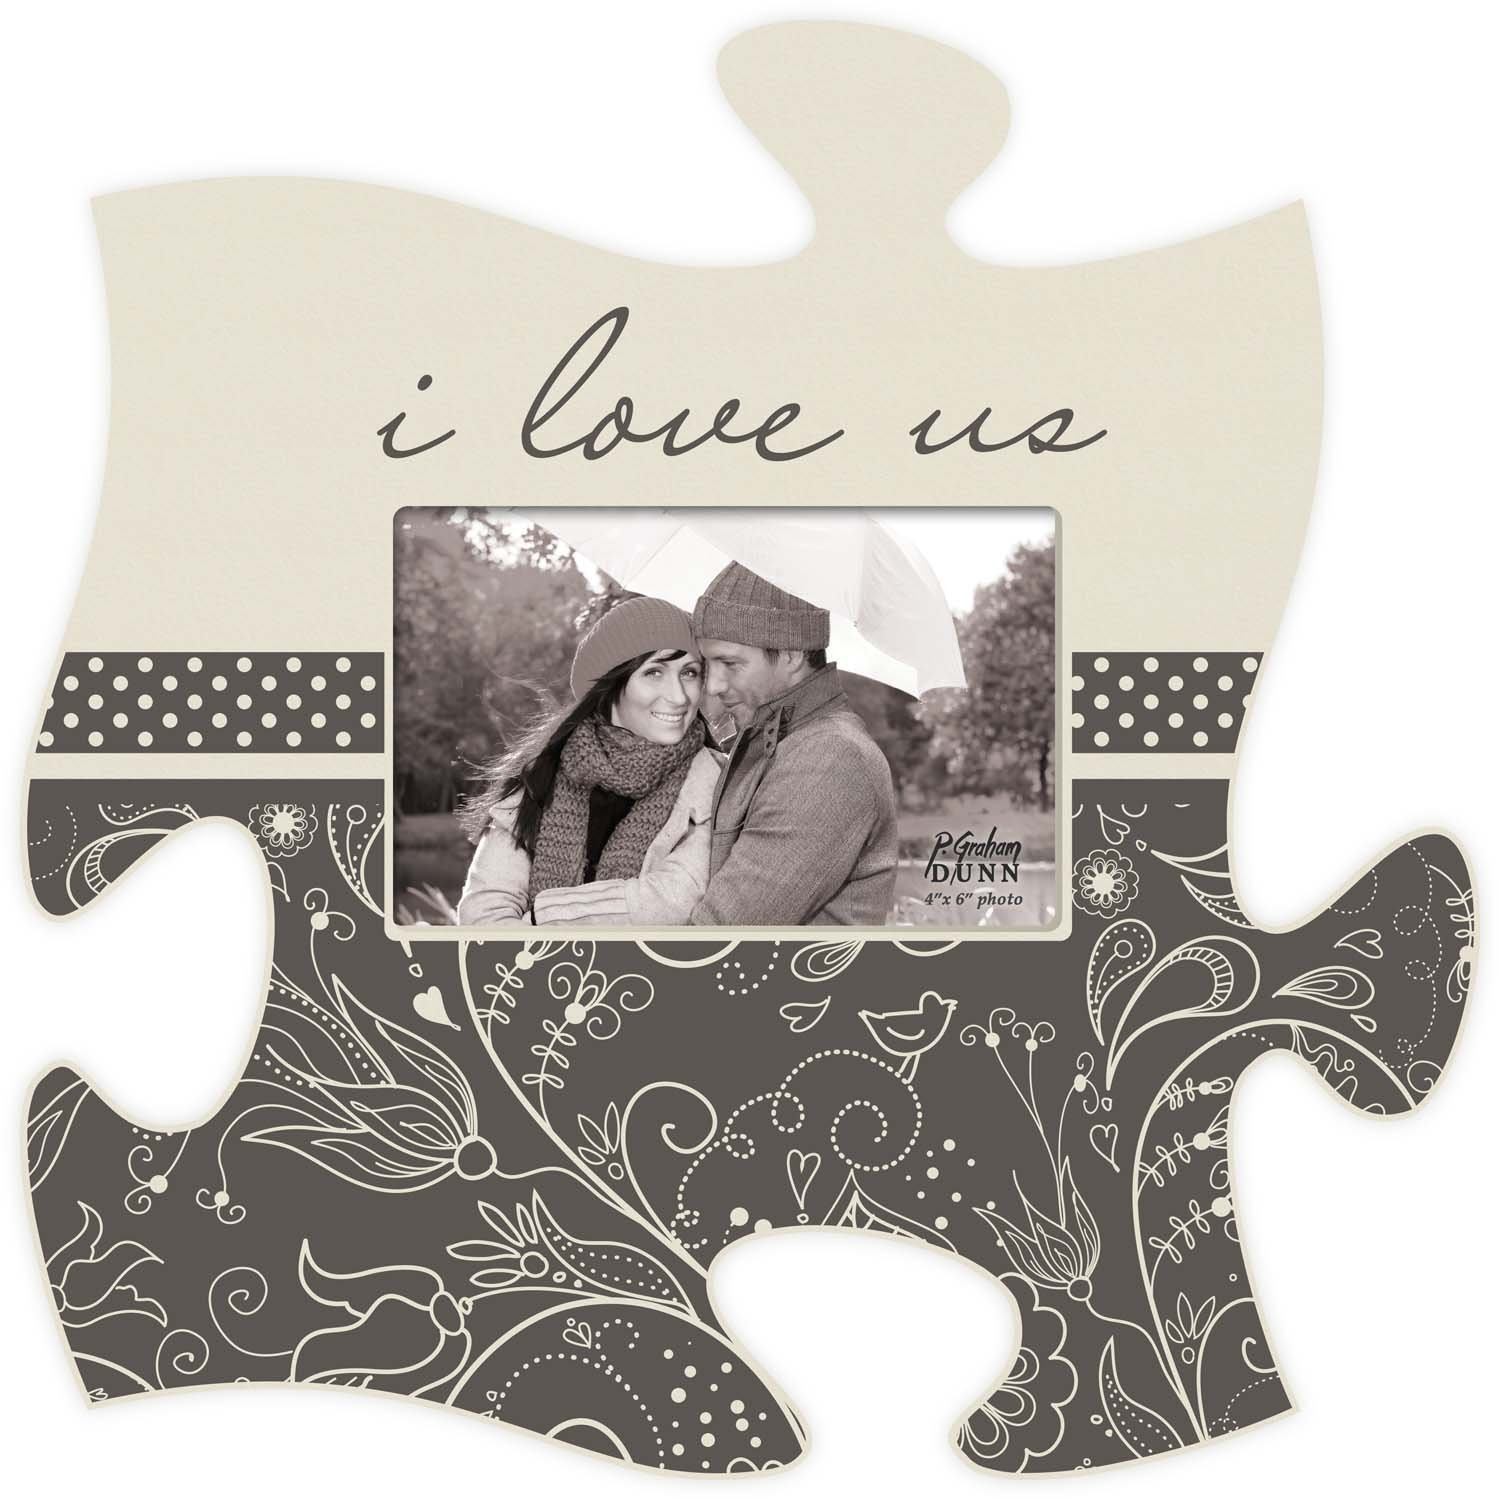 I Love Us Grey Floral Dots 12 x 12 Wall Hanging Wood Puzzle Piece Photo Frame